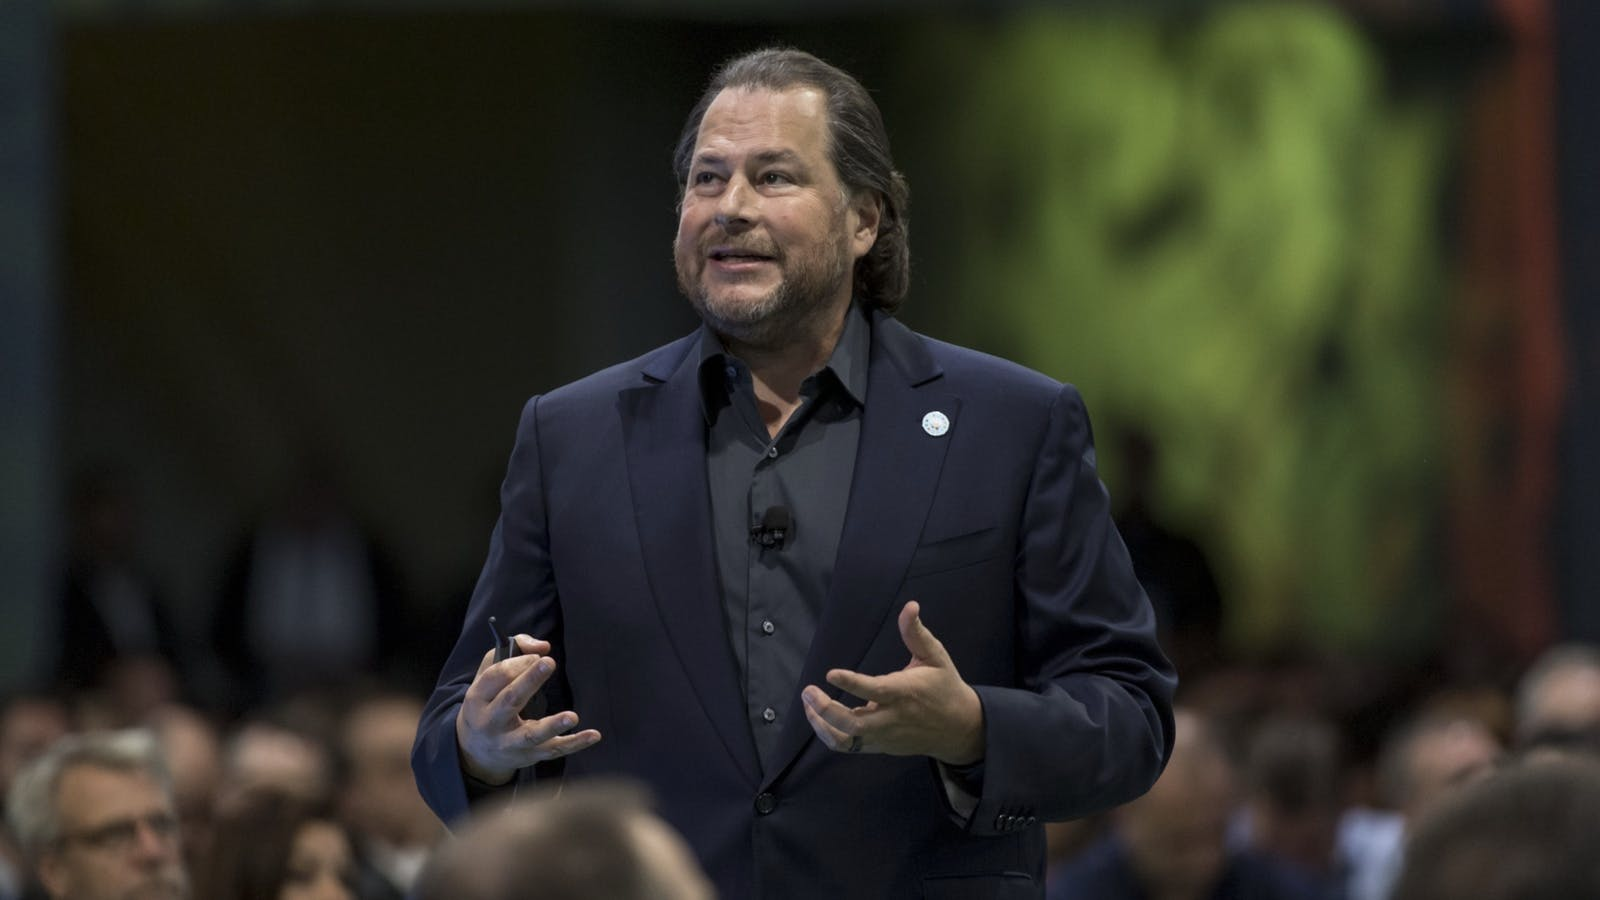 Salesforce co-CEO Marc Benioff. Photo by Bloomberg